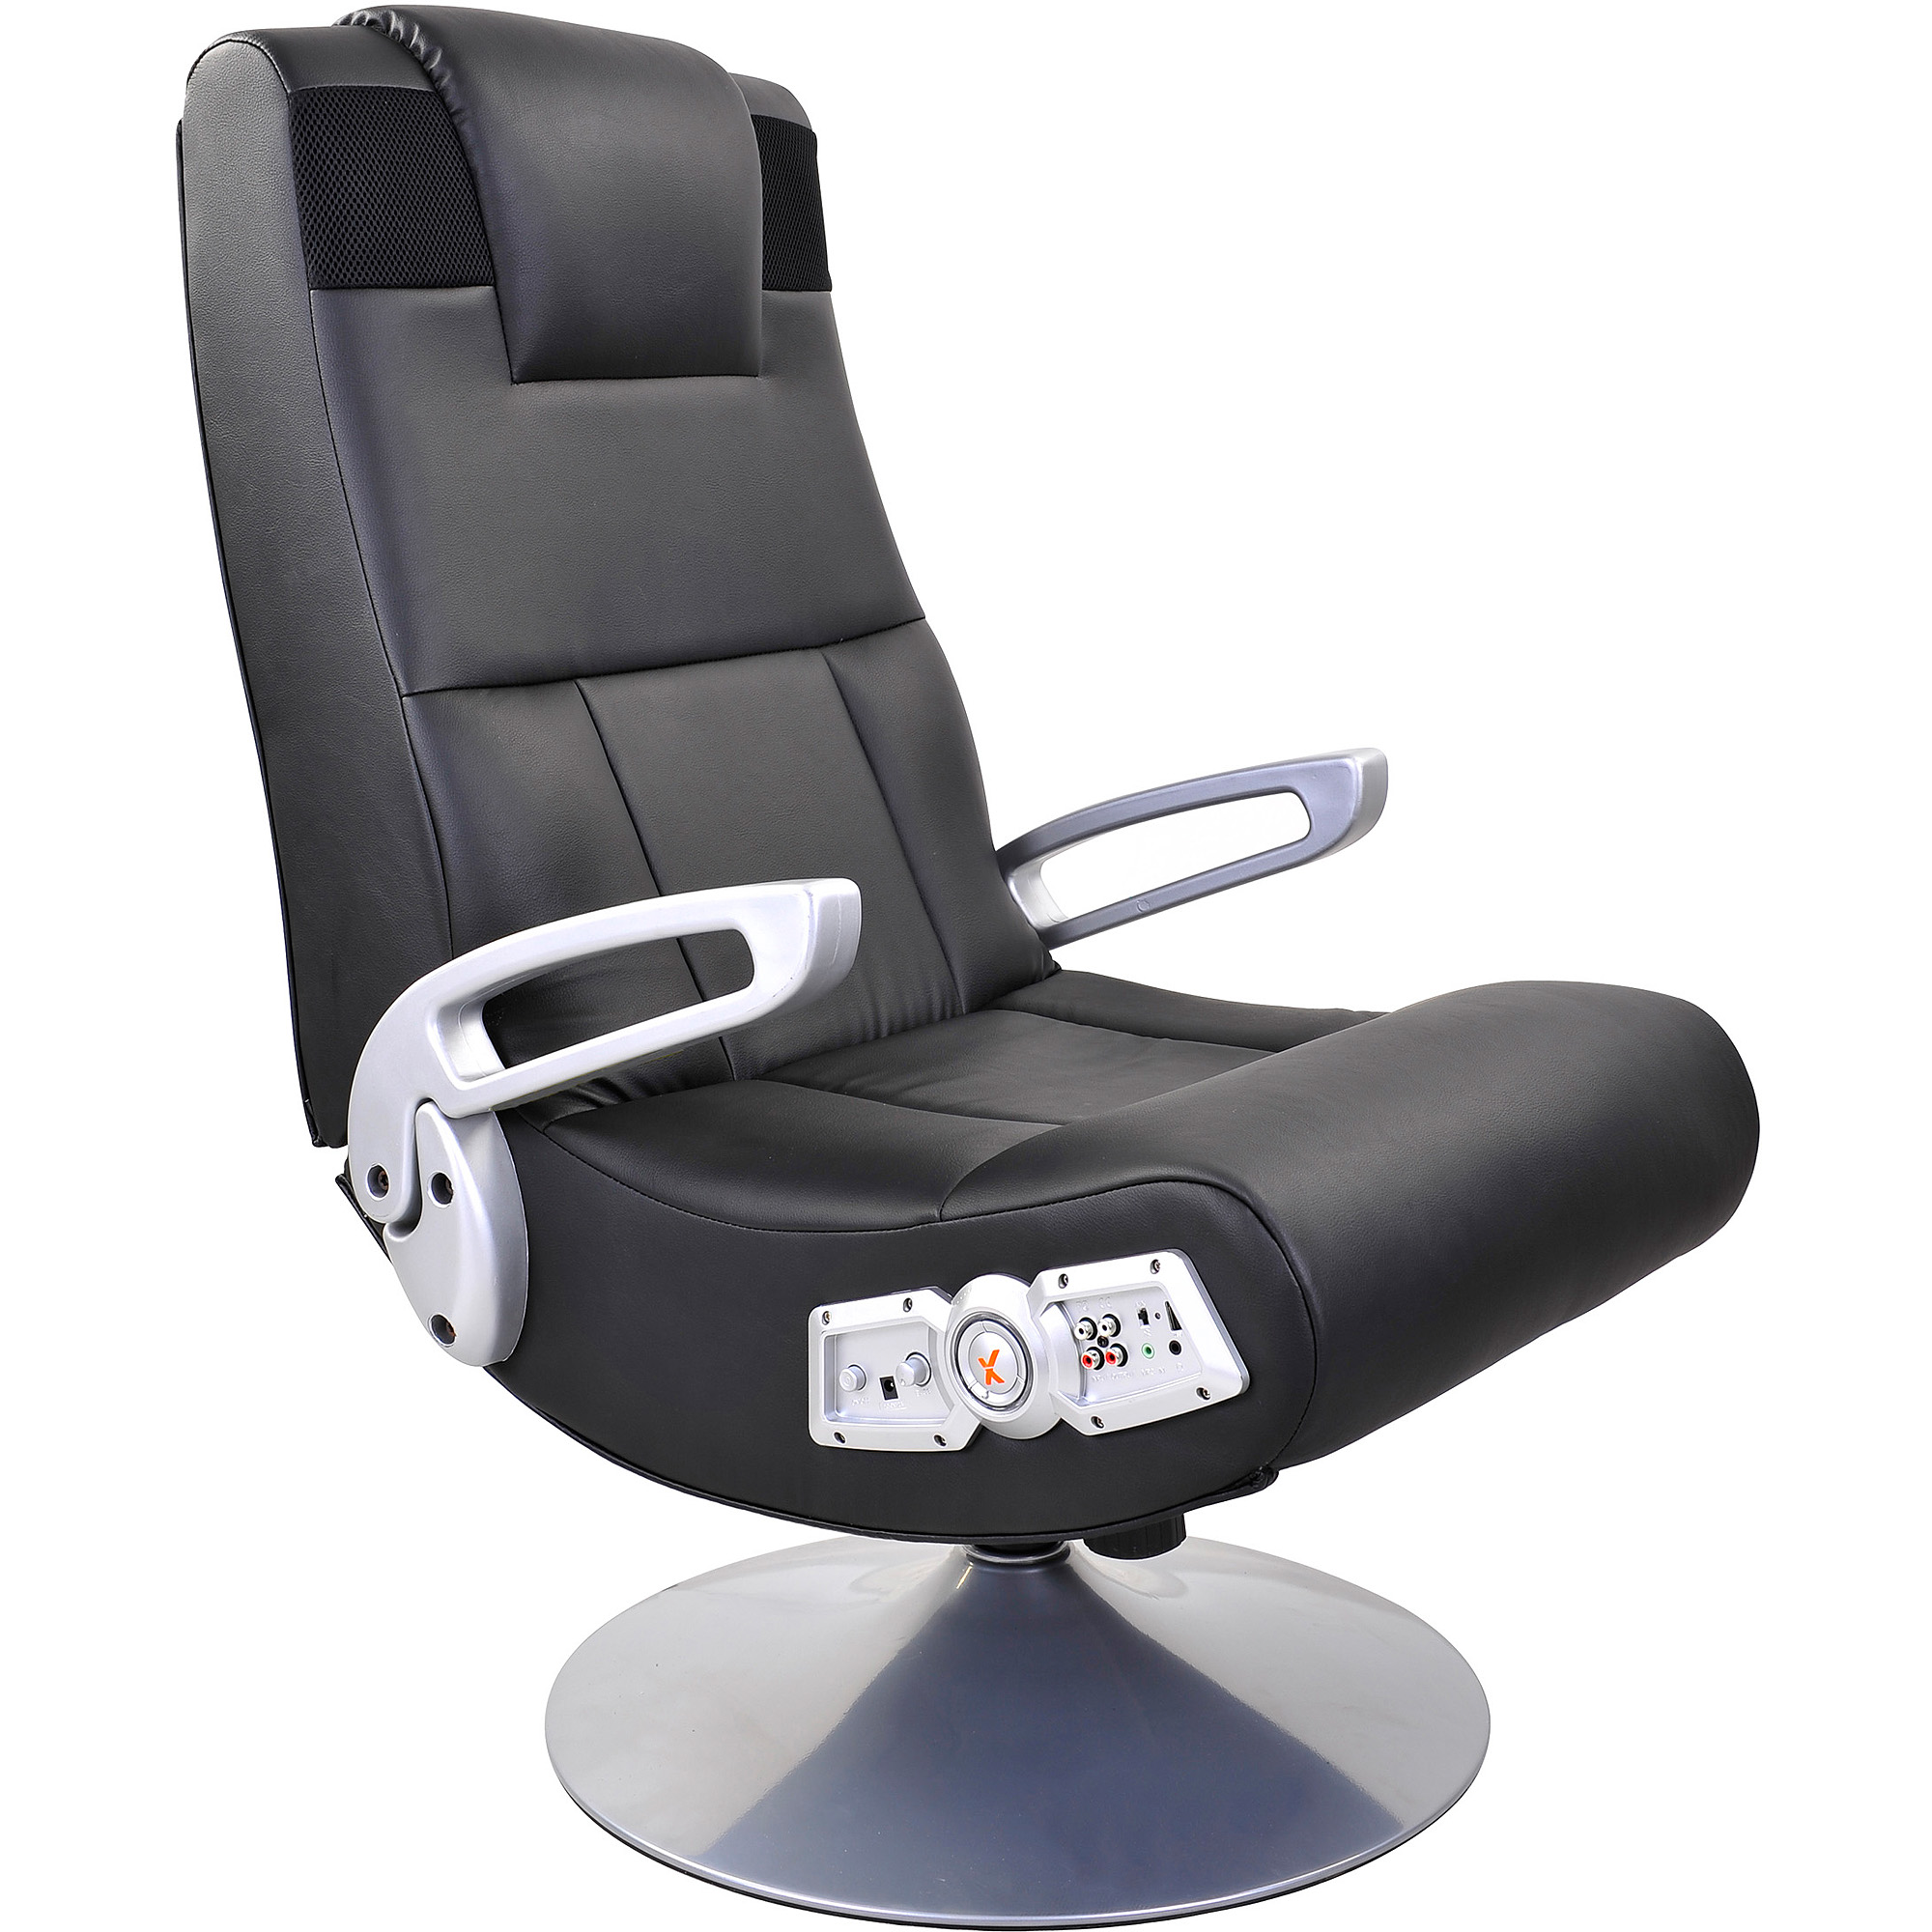 X-Rocker Pedestal Video Rocker Gaming Chair with Bluetooth Technology